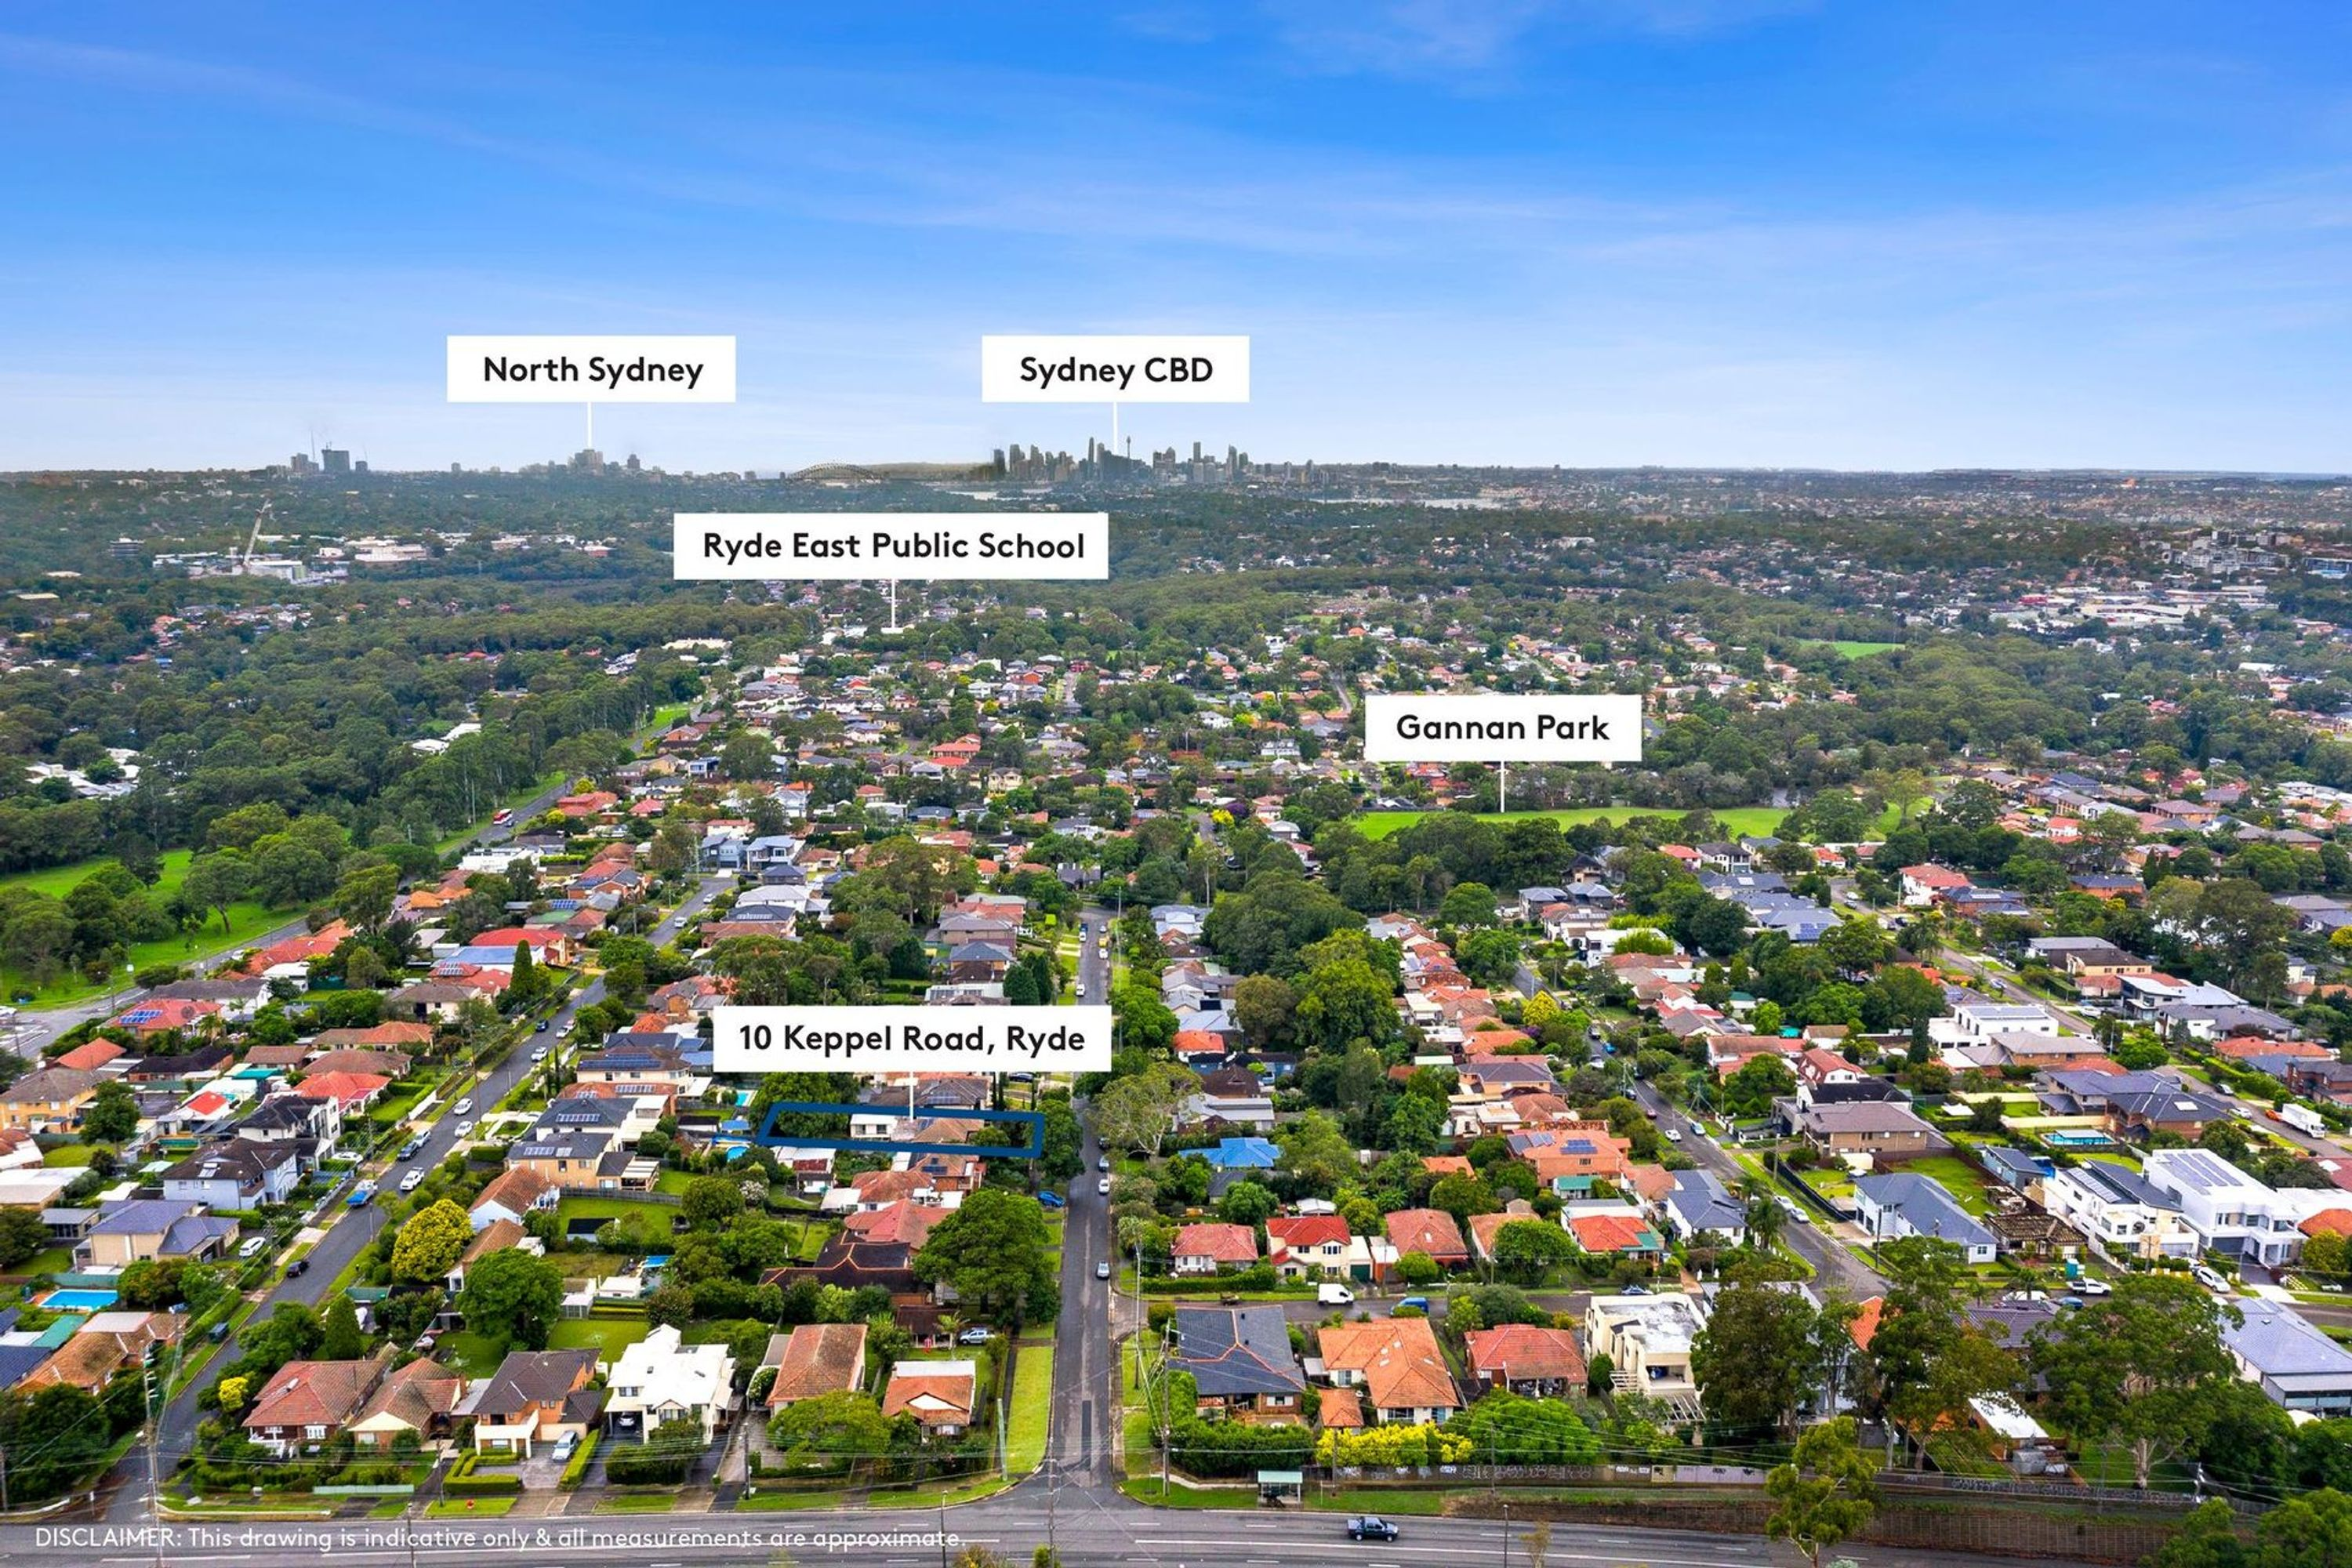 10 Keppel Road, Ryde, NSW 2112